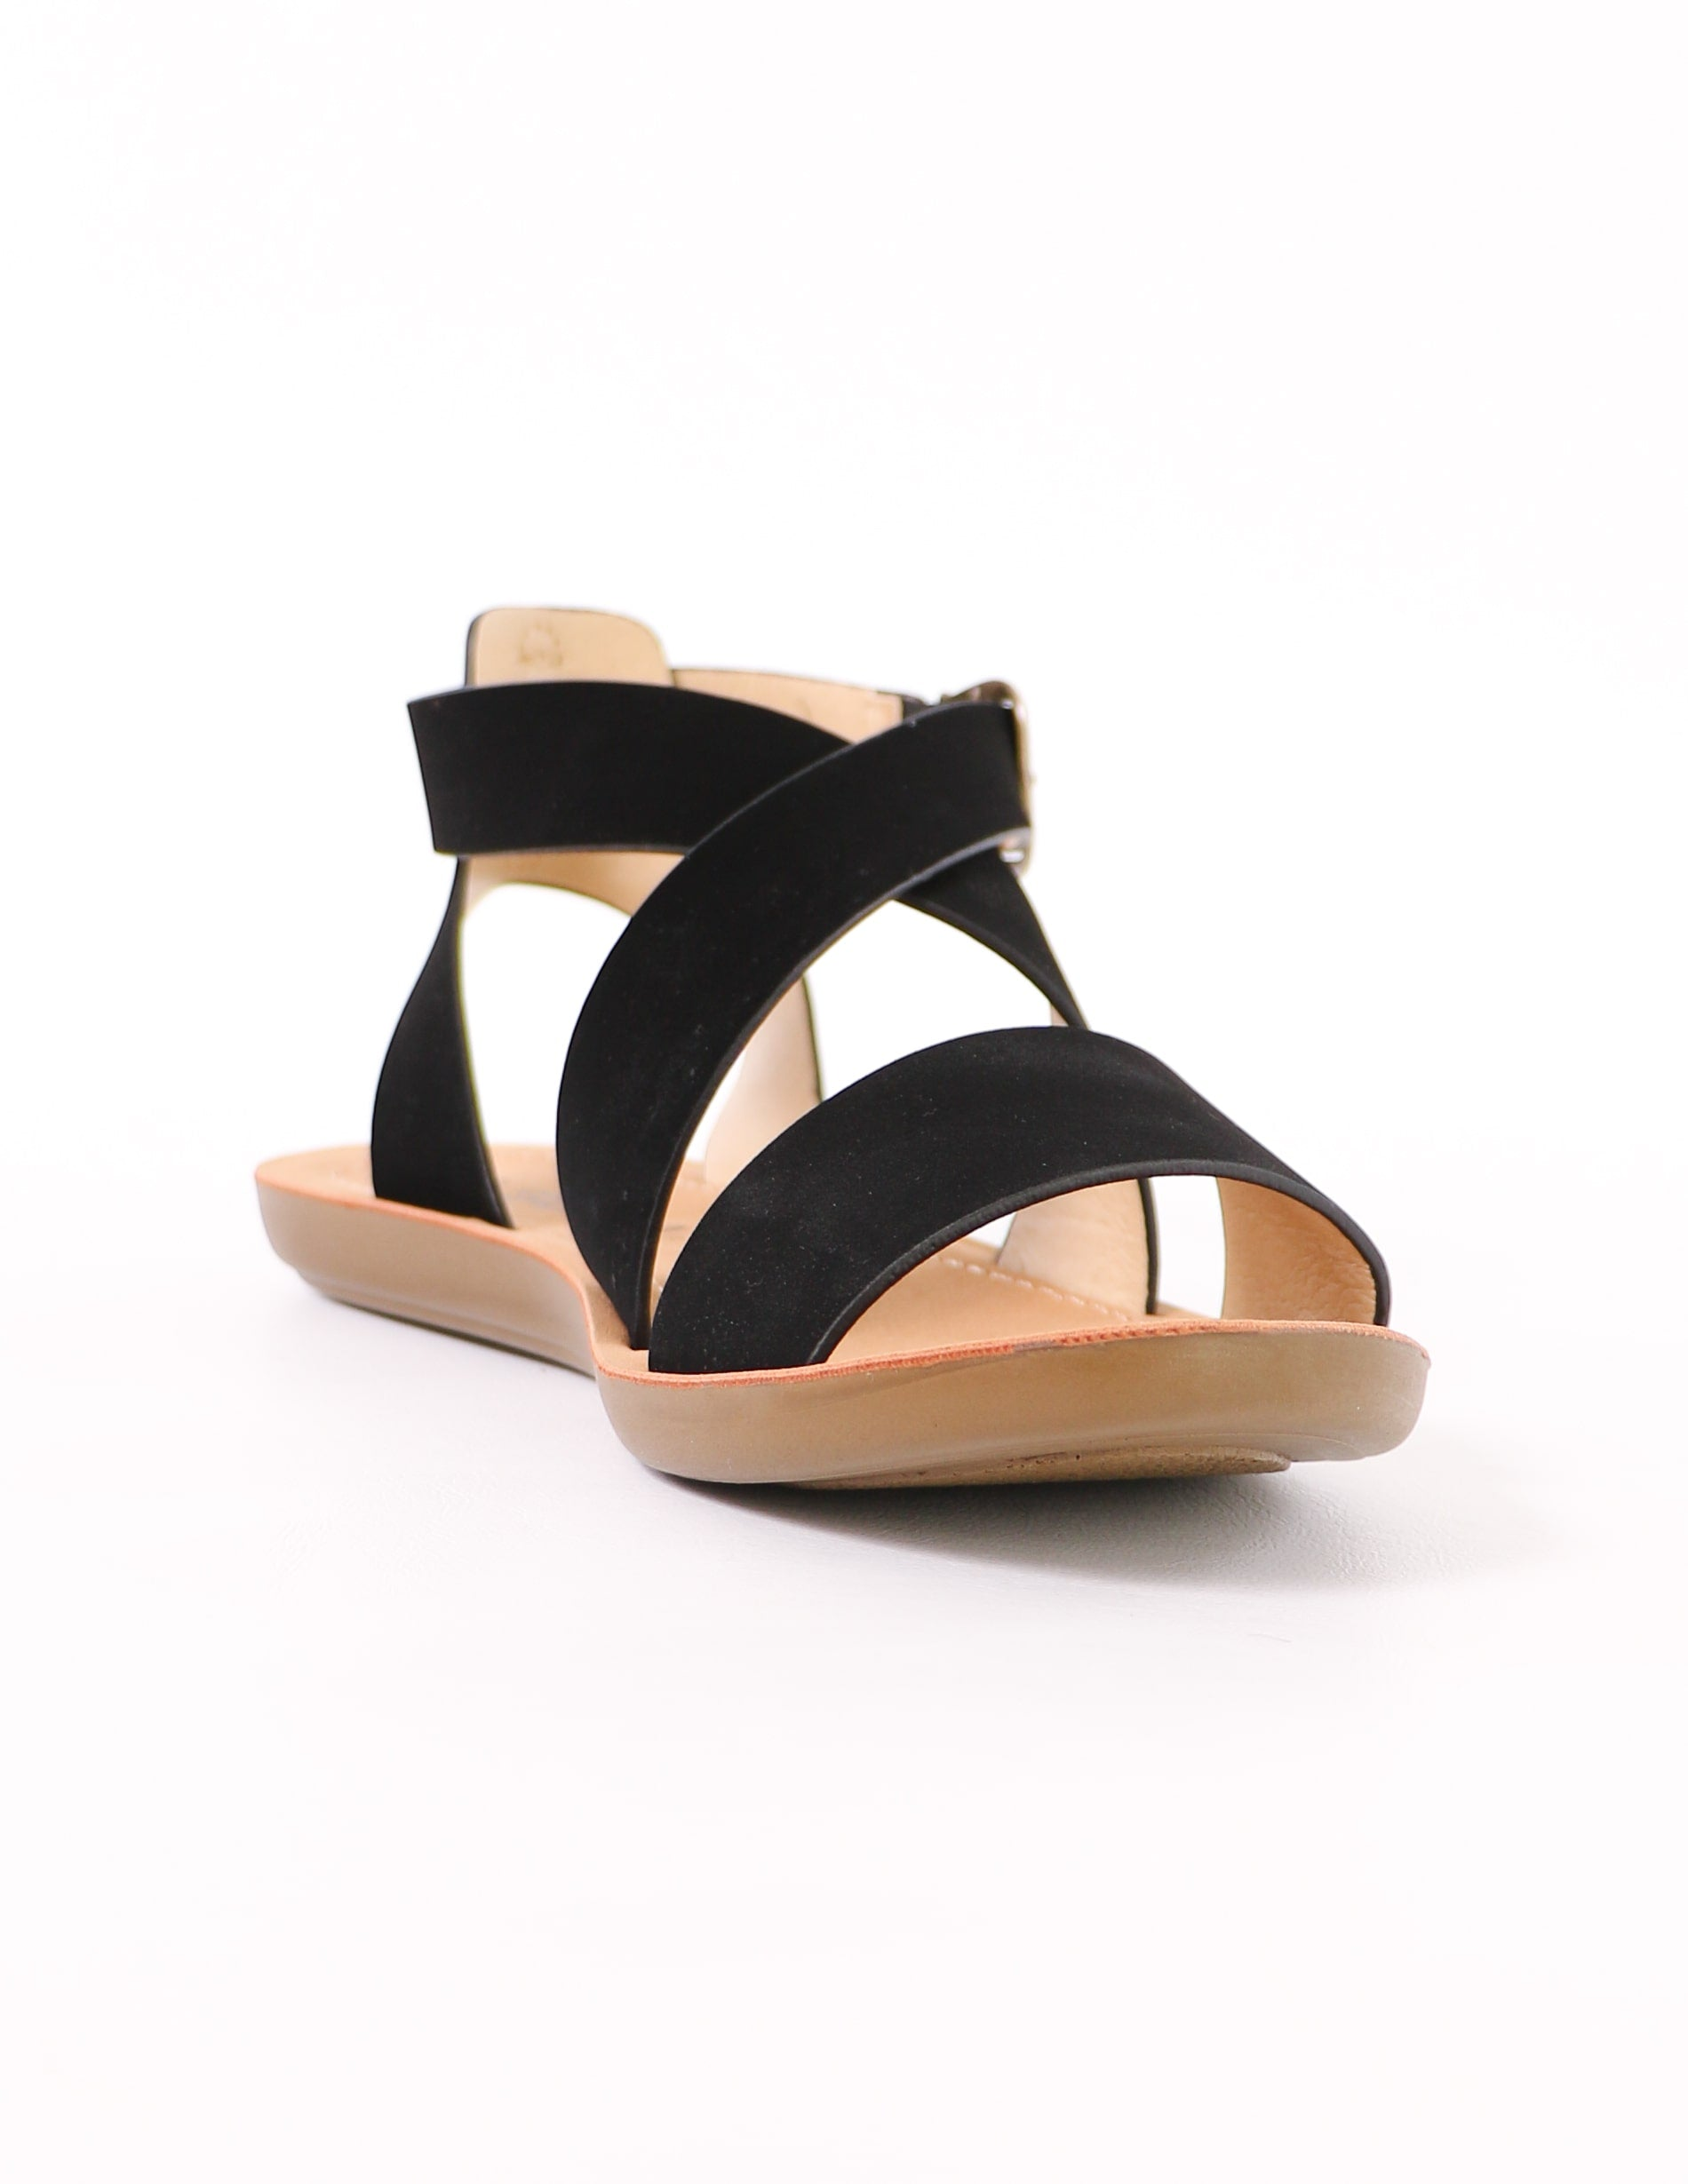 tan sole and black upper on the criss cross my heart sandal